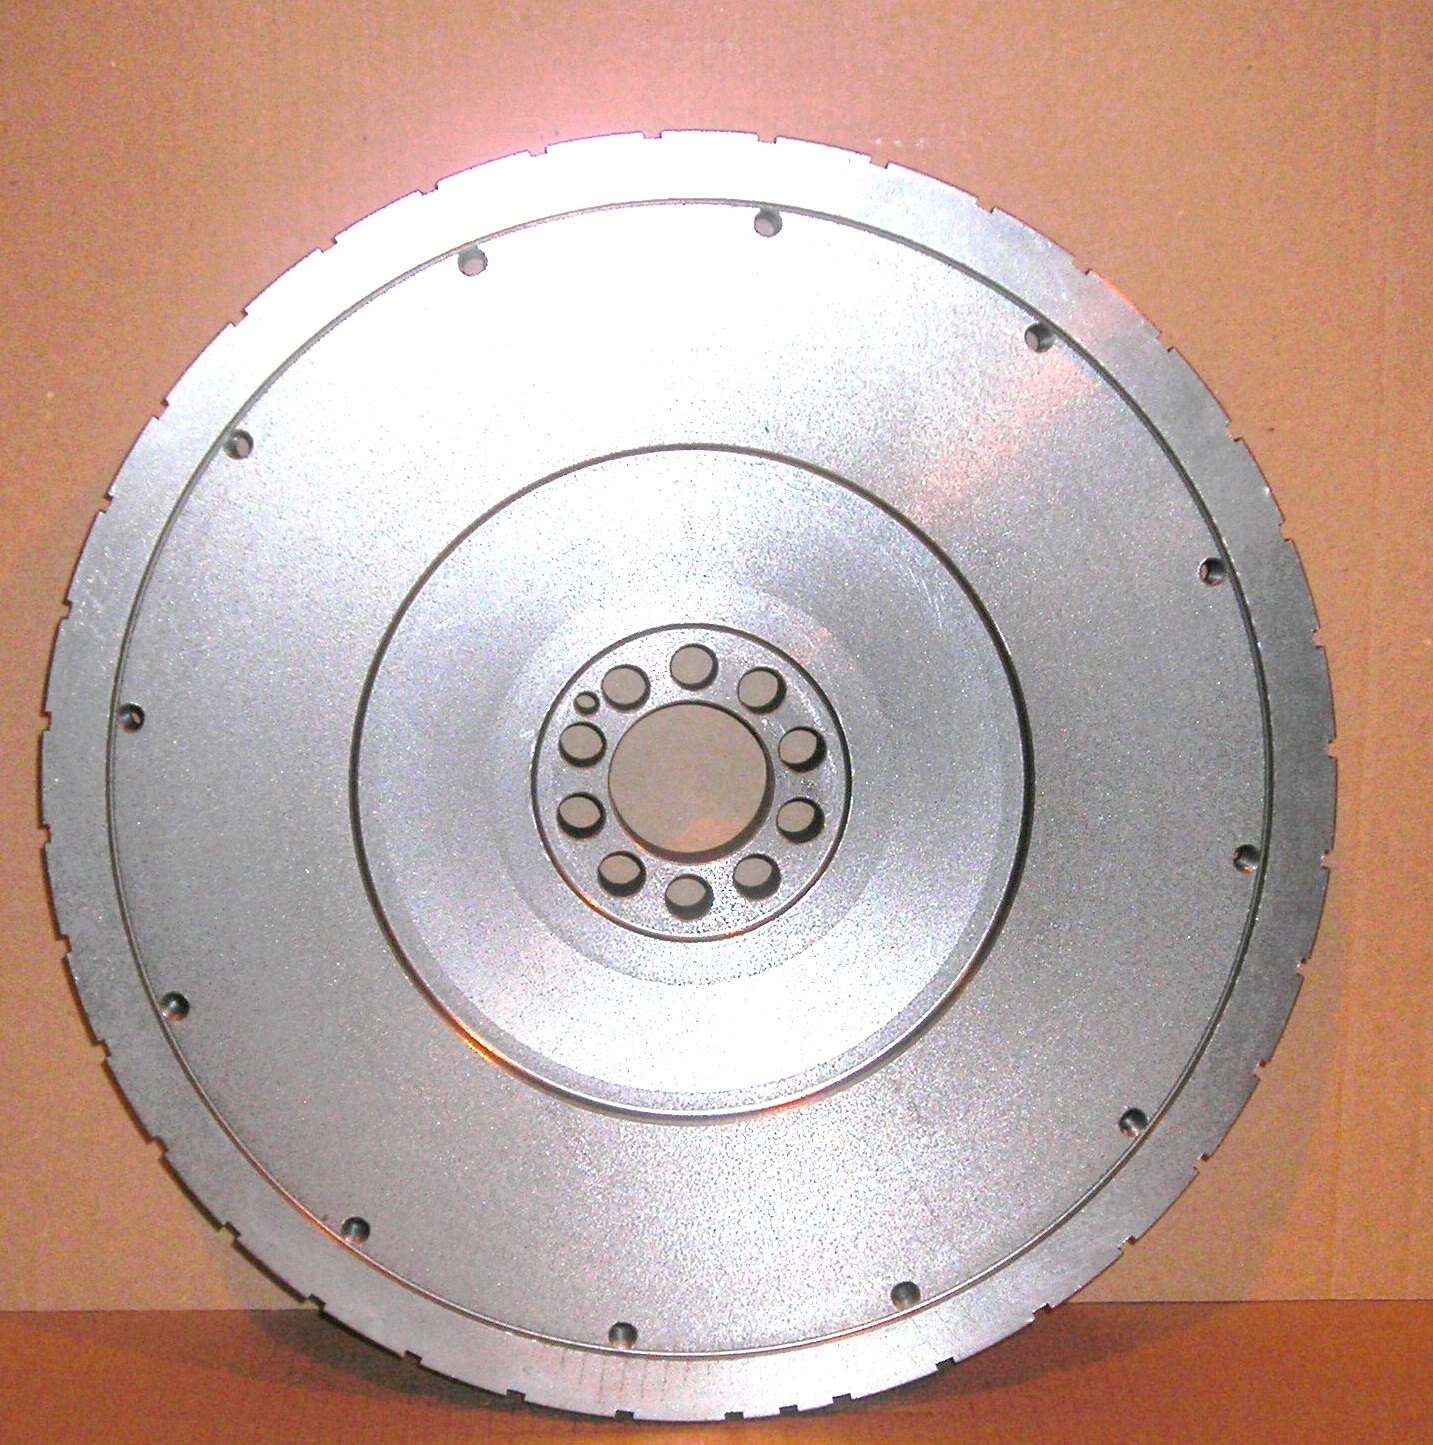 4600300305 Mercedes MBE Flywheel Front View - fixed